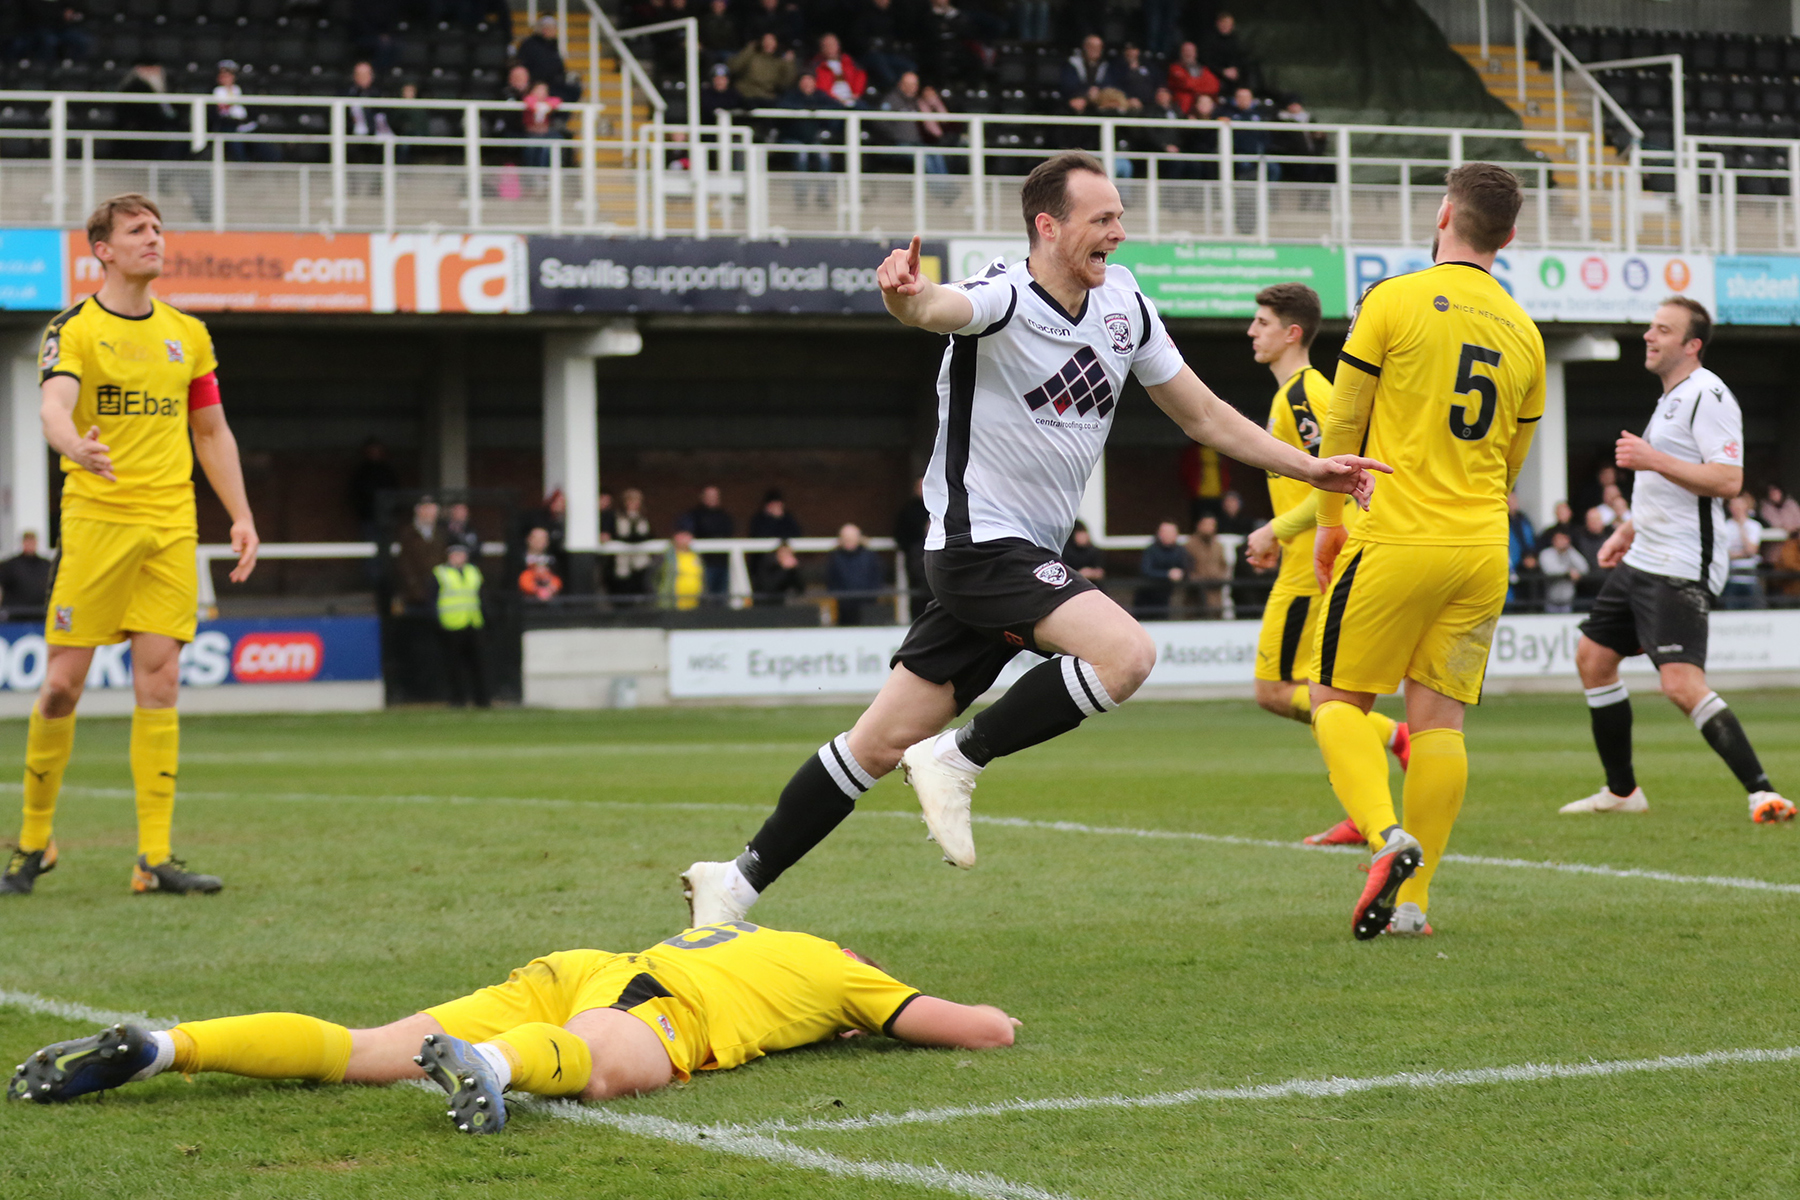 Lance Smith celebrates his goal. Picture: Steve Niblett/Hereford FC